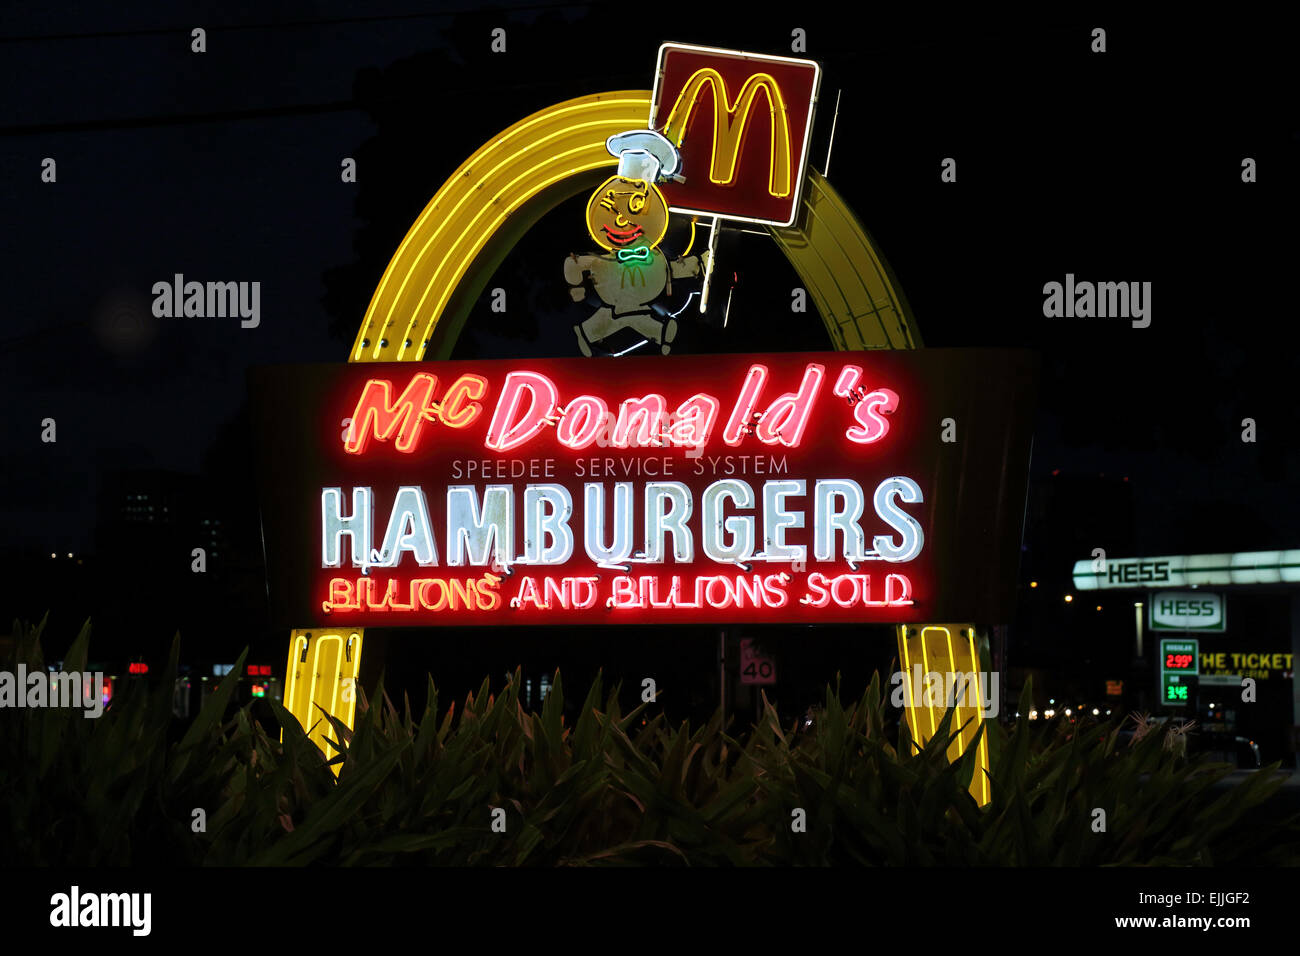 McDonalds fast food restaurant neon hamburger sign, golden arches light sign outside McDonald's exterior - Stock Image